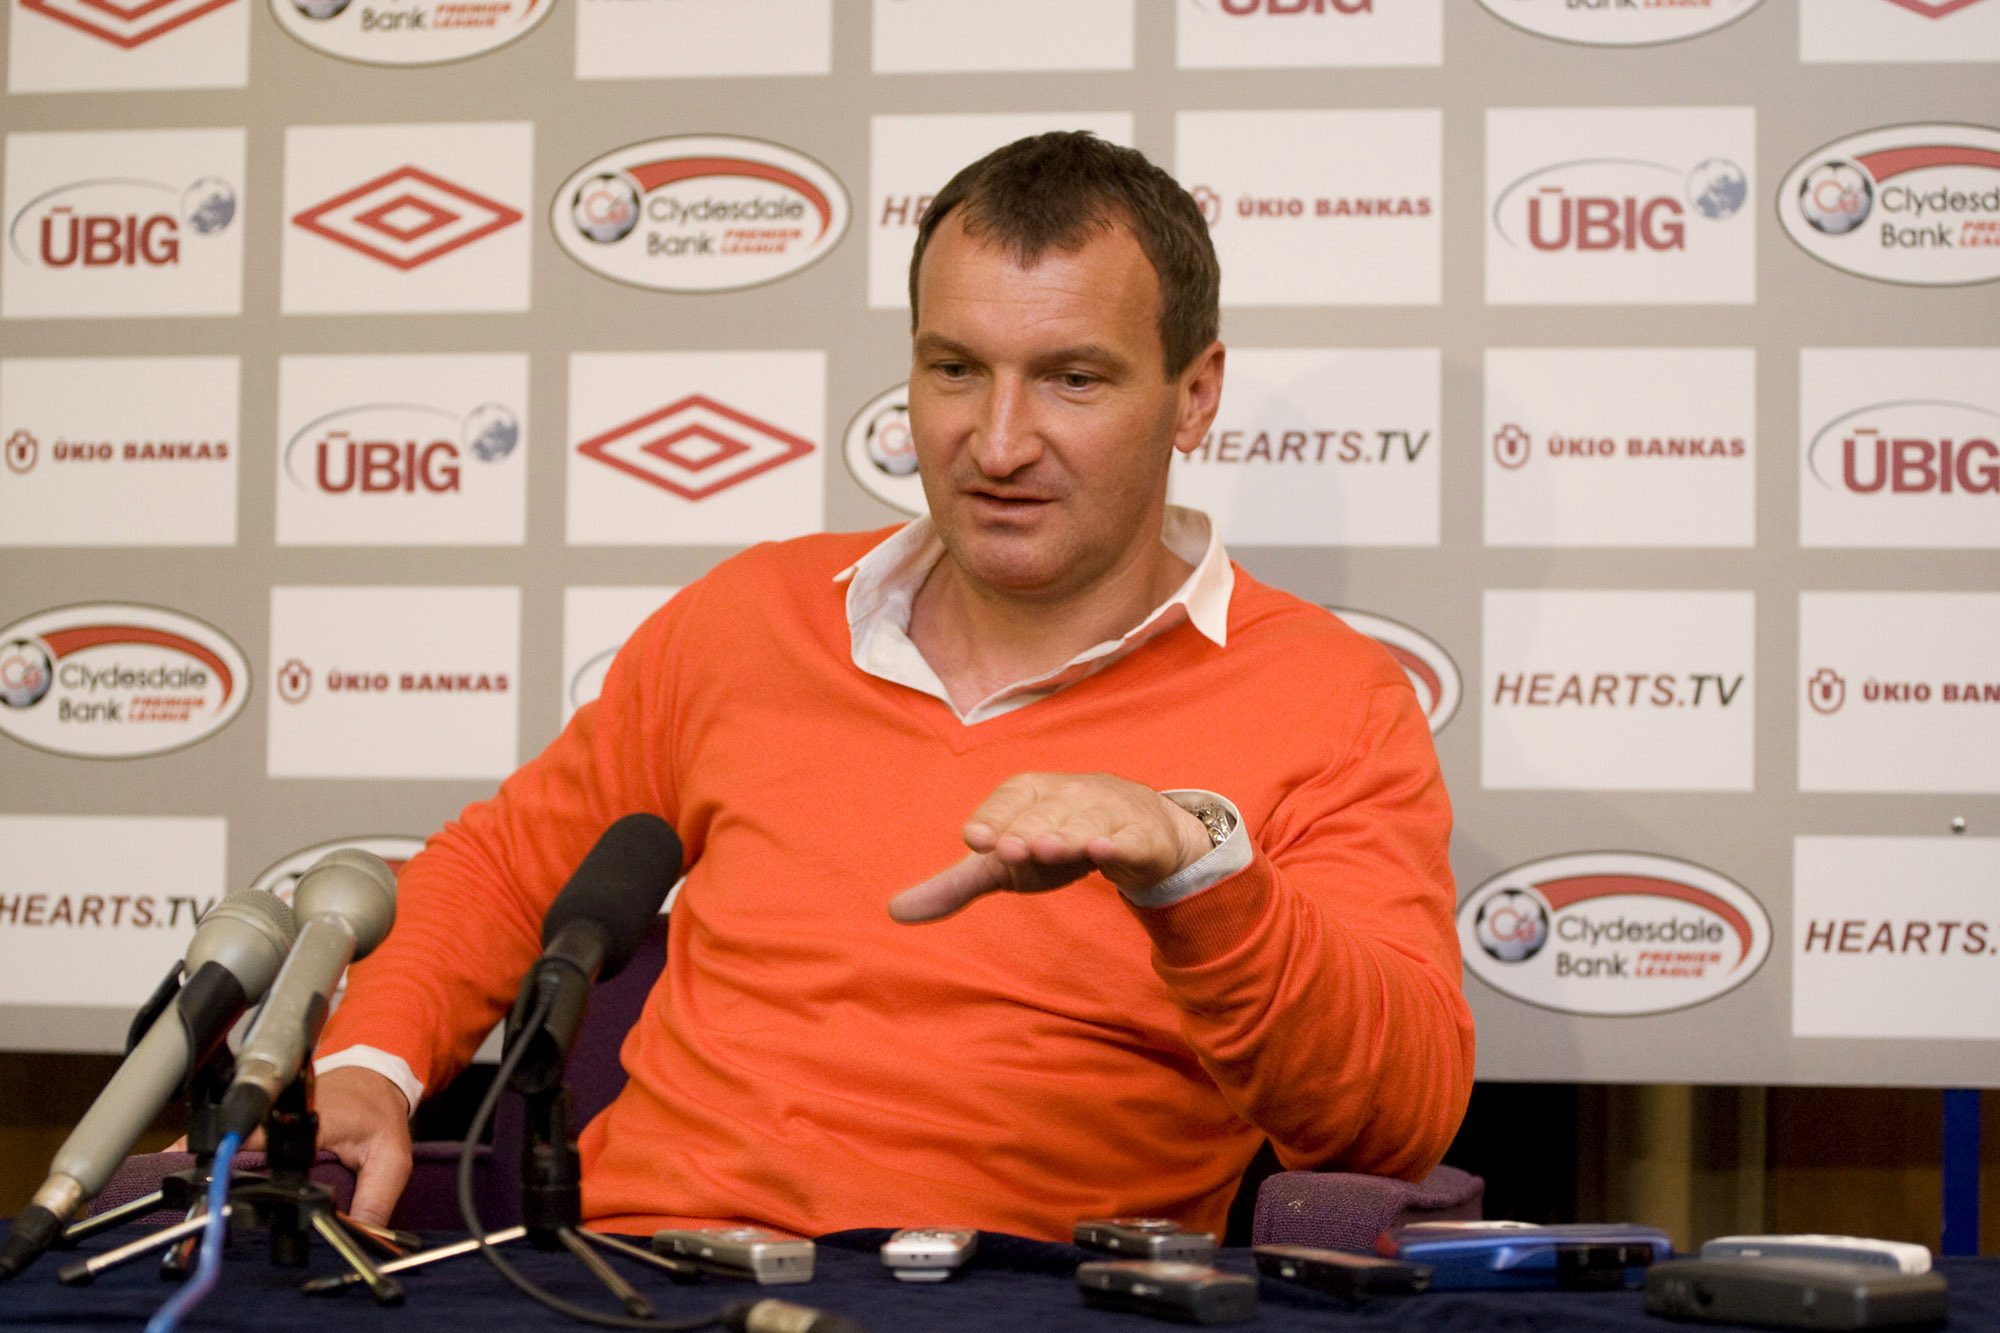 Csaba Laszlo, seen here in 2009 sporting a fetching tangerine sweater, is the new Dundee United boss.